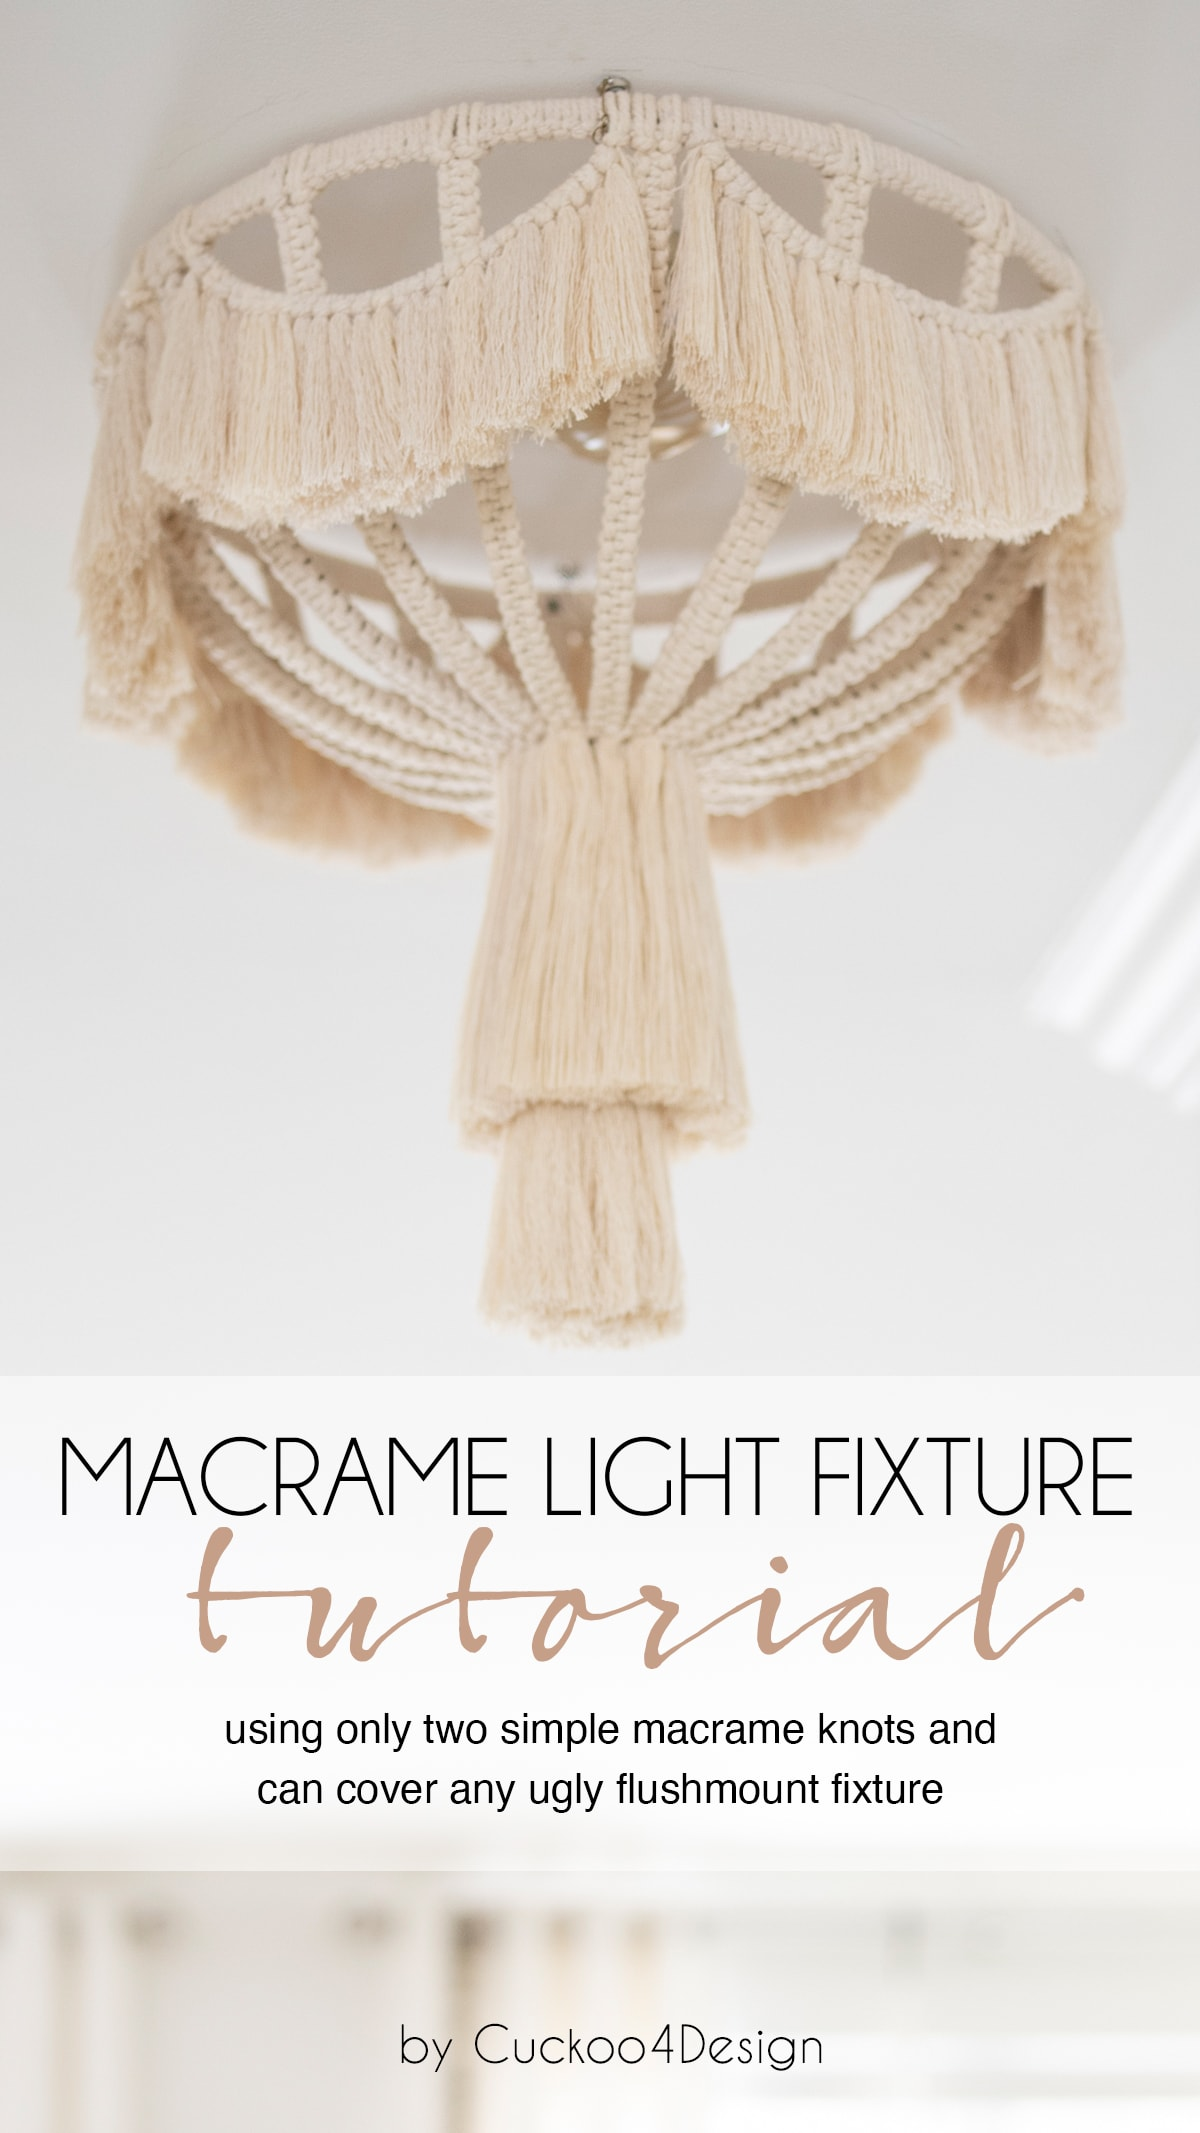 finished and hanging macrame light fixture